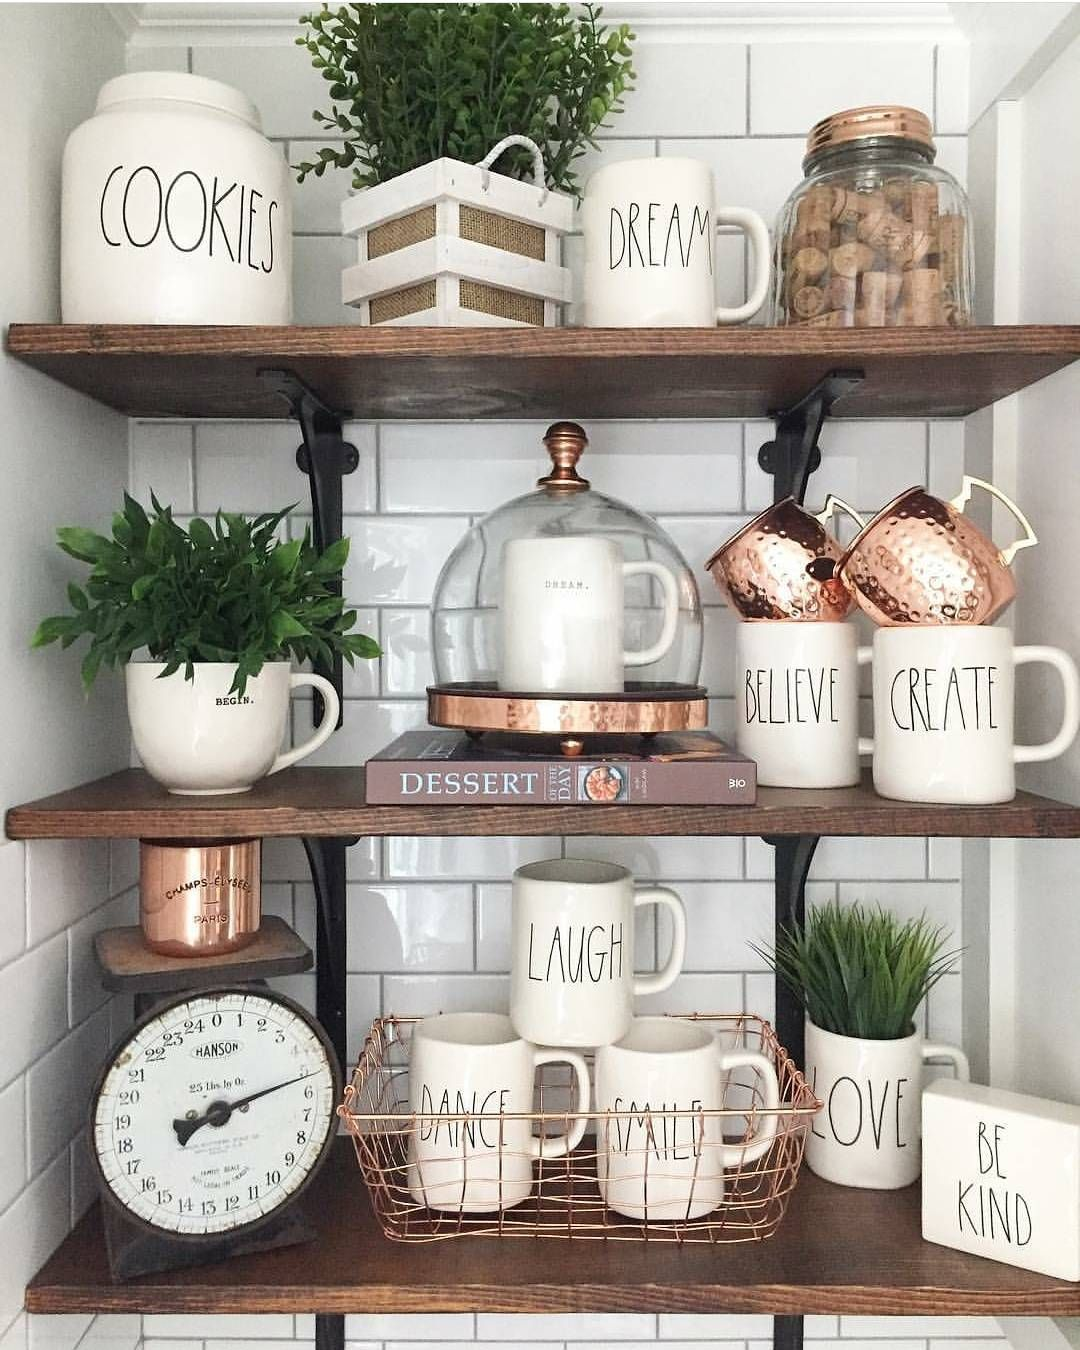 Kitchen Shelf Decor Ideas: Mixed Copper Collection, Plants & Eye-catching Kitchen